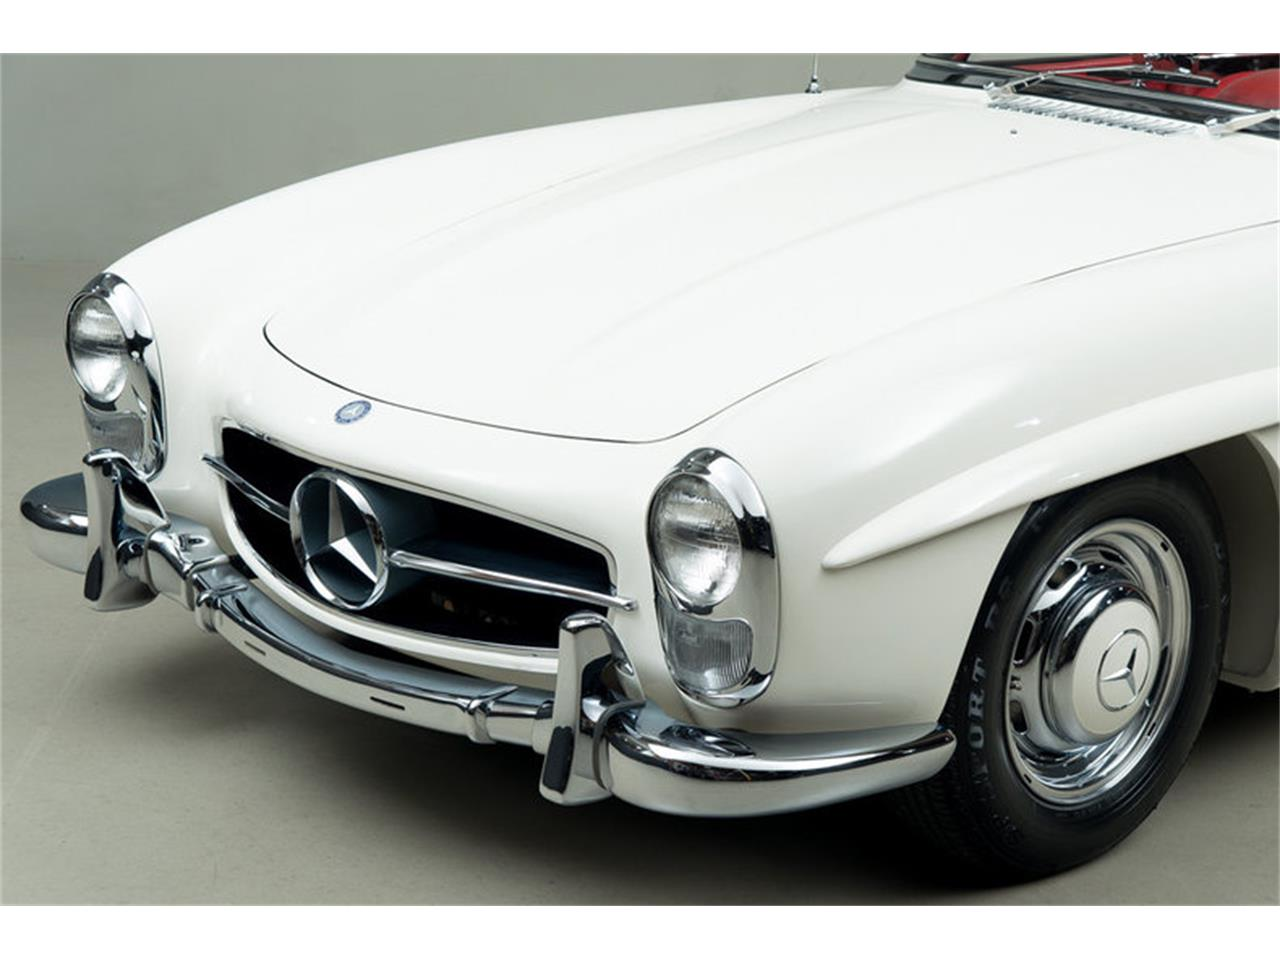 Large Picture of Classic '63 300SL Roadster located in Scotts Valley California Auction Vehicle - EFPZ